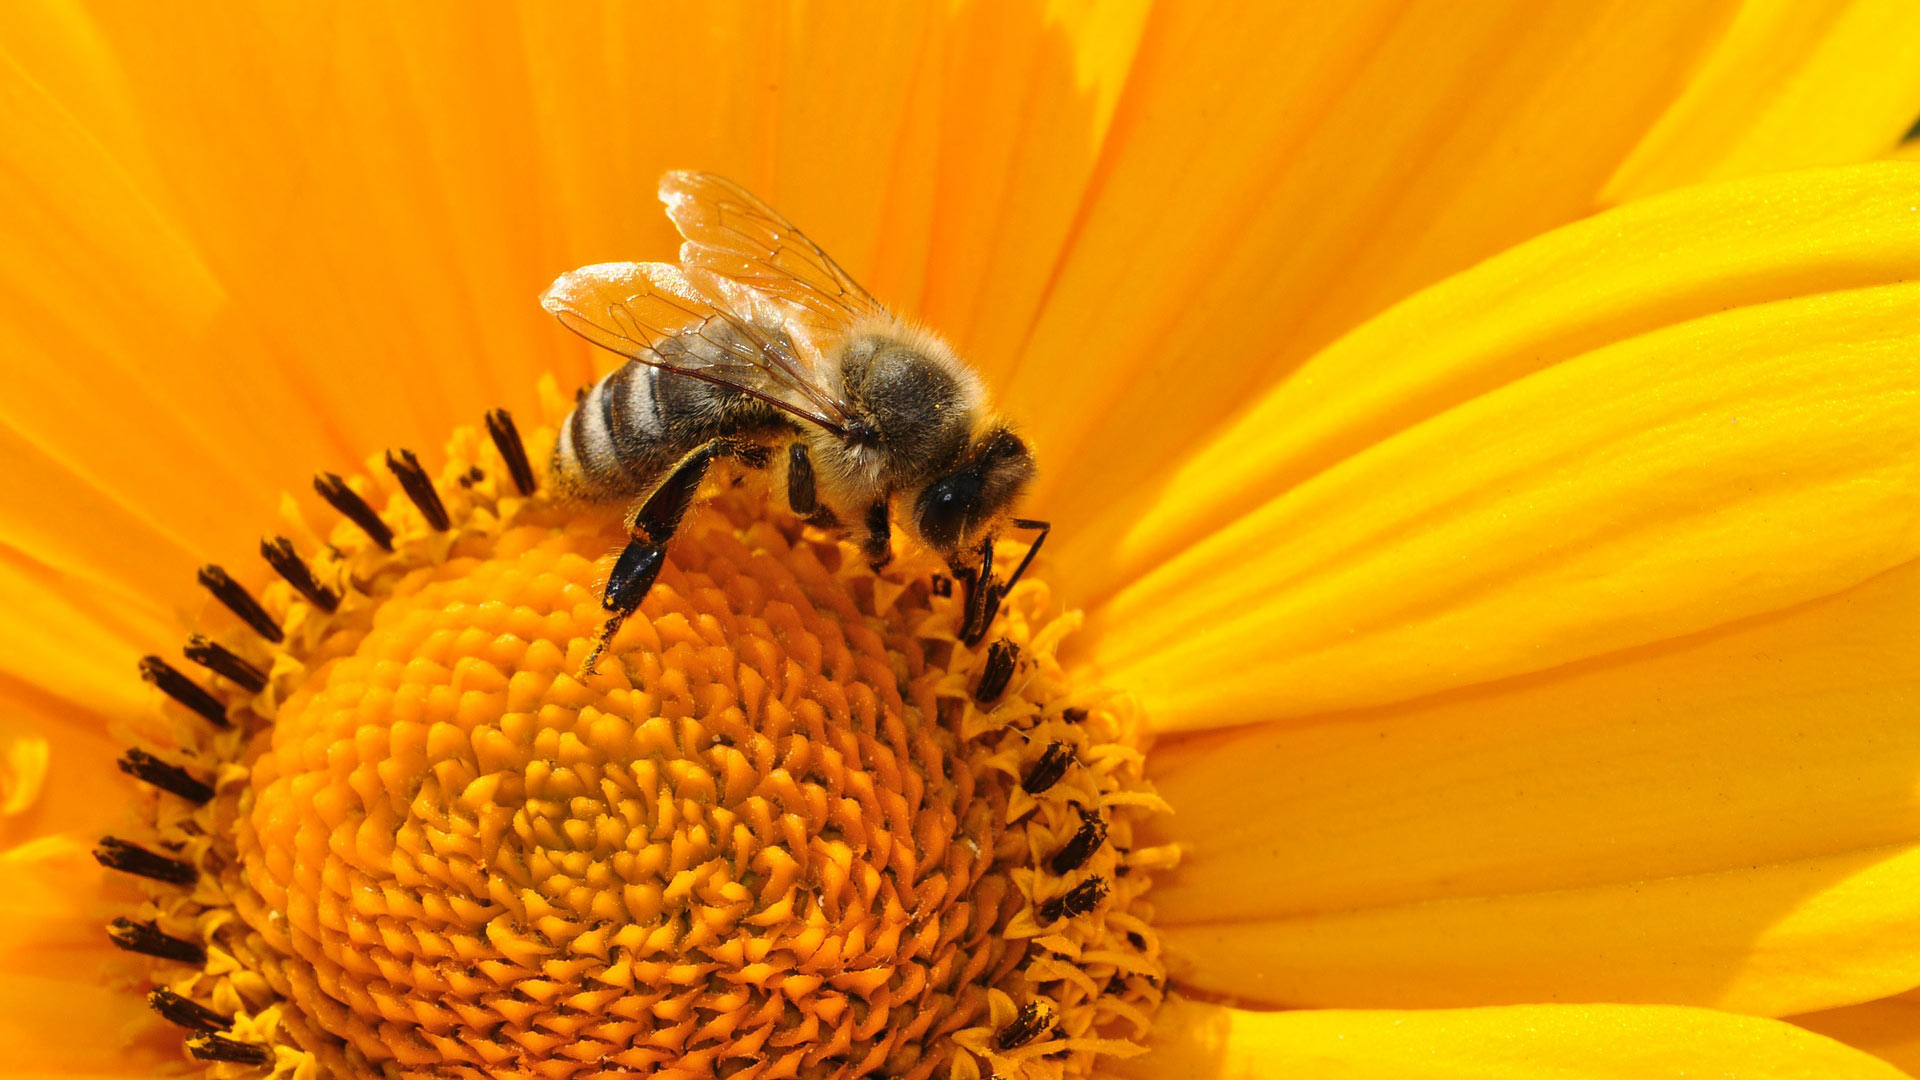 A bee gathers pollen from a sunflower.